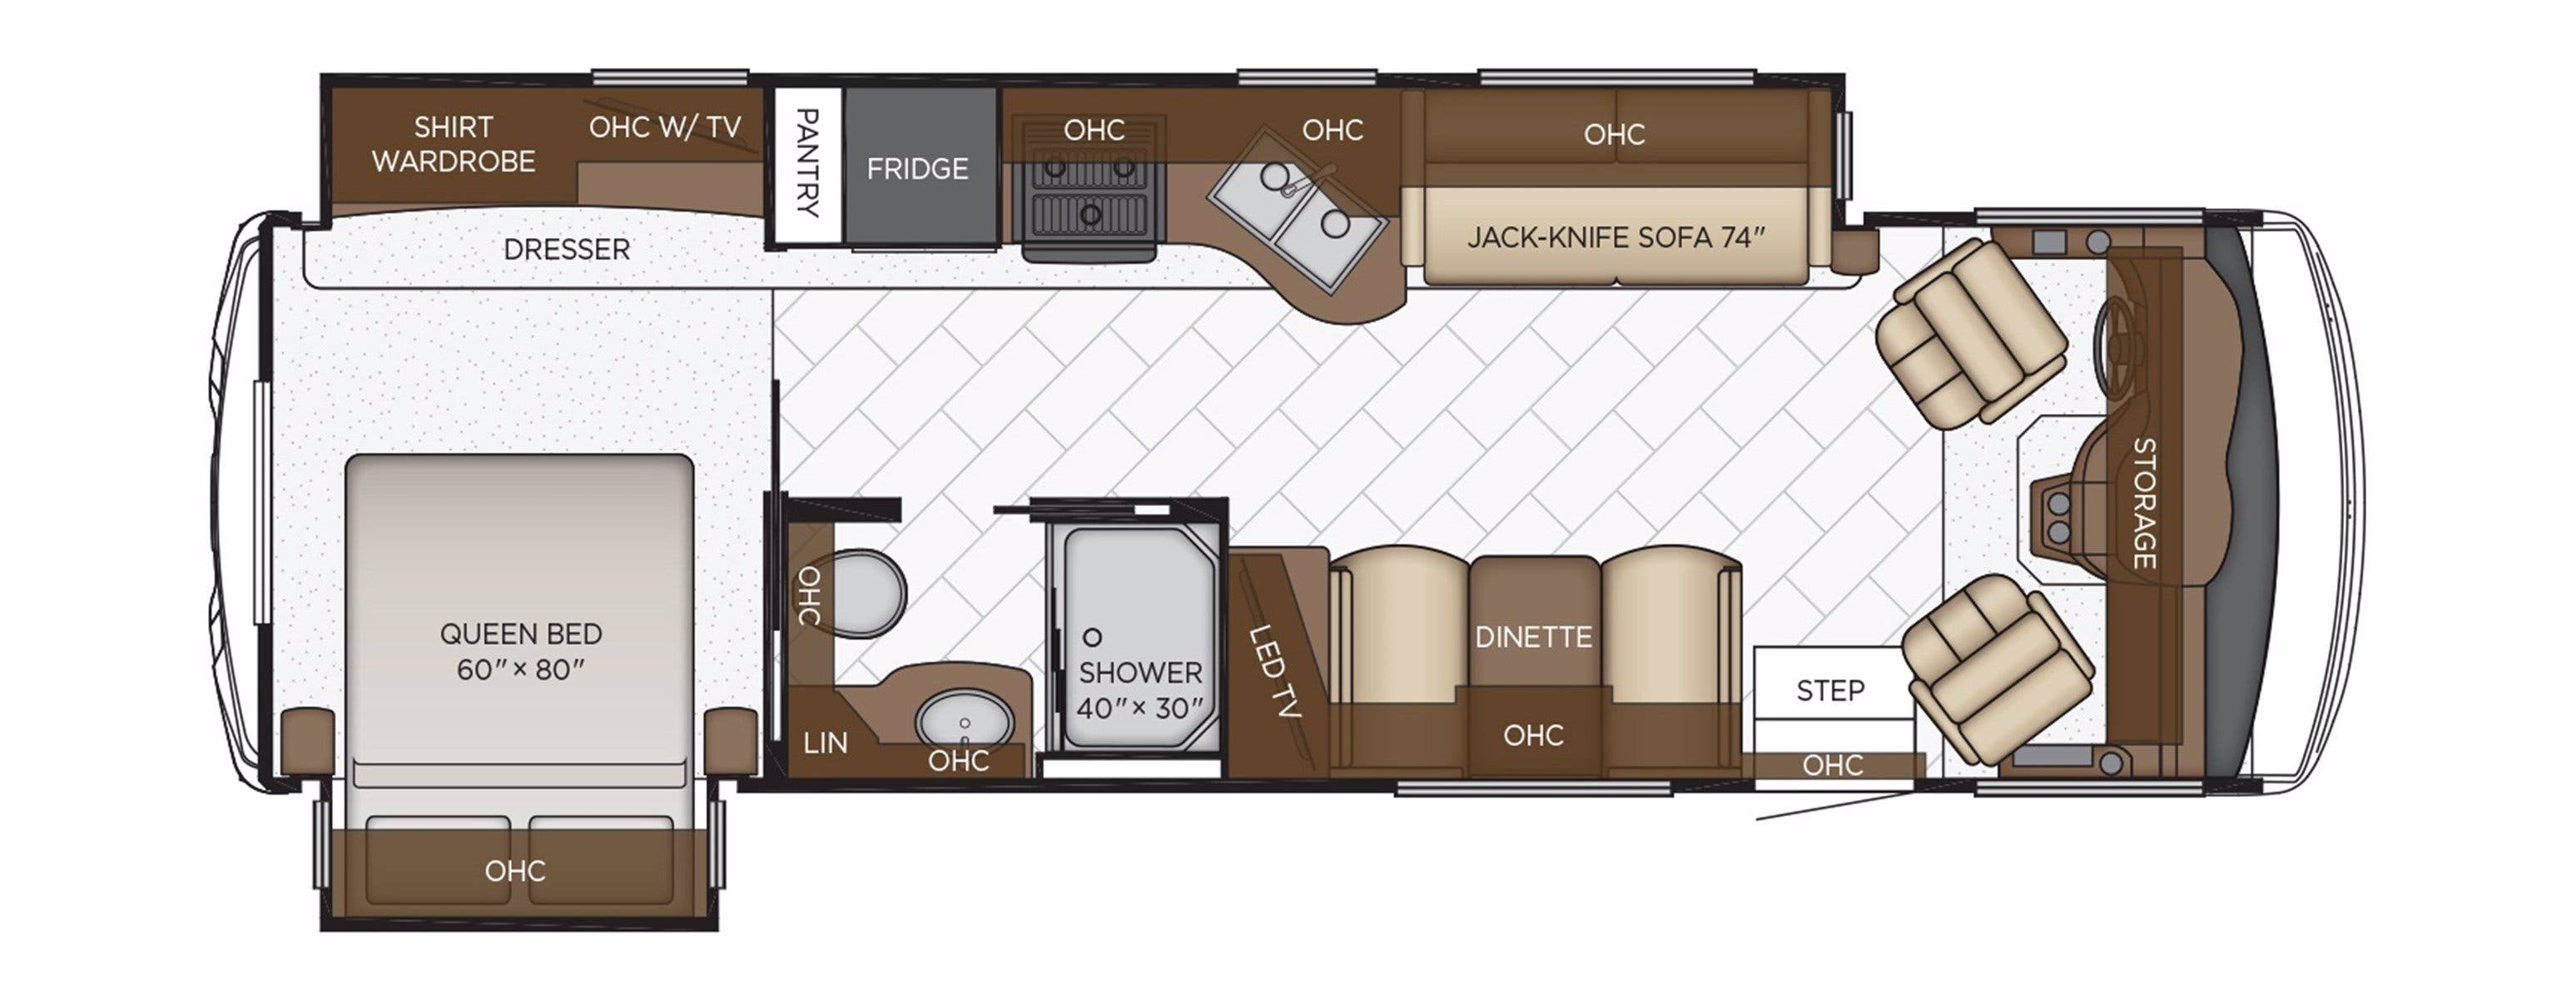 2020_newmar_bay_star_floorplan